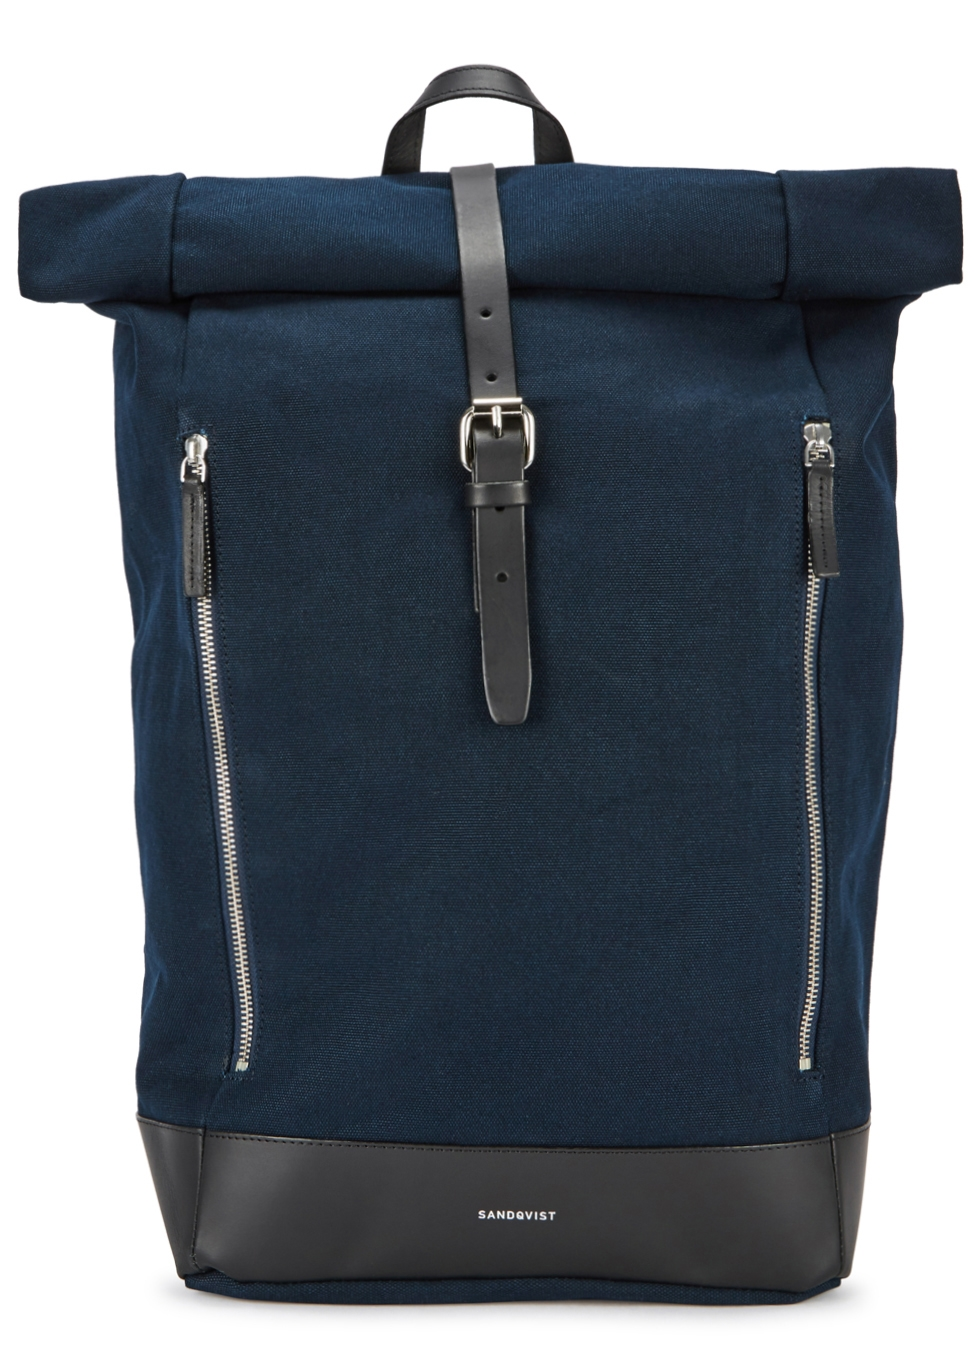 SANDQVIST MARIUS LEATHER-TRIMMED CANVAS BACKPACK